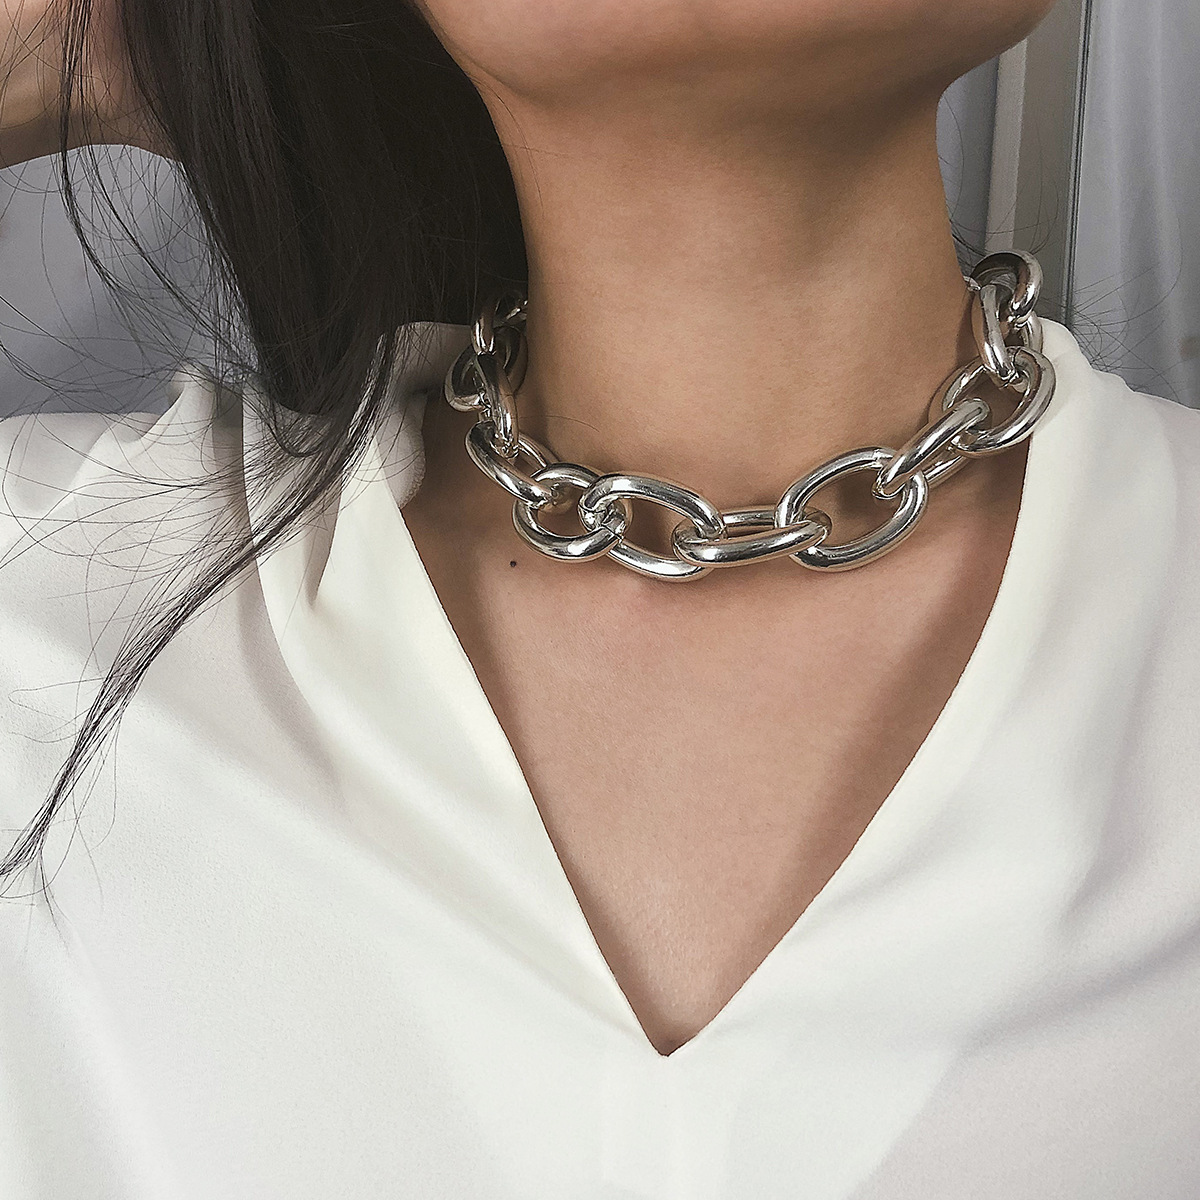 KingDeng Link Chain Retro Exaggerated Punk Metal Item Necklace Female Simple Chain Geometric Personality Necklace Shackles New(China)